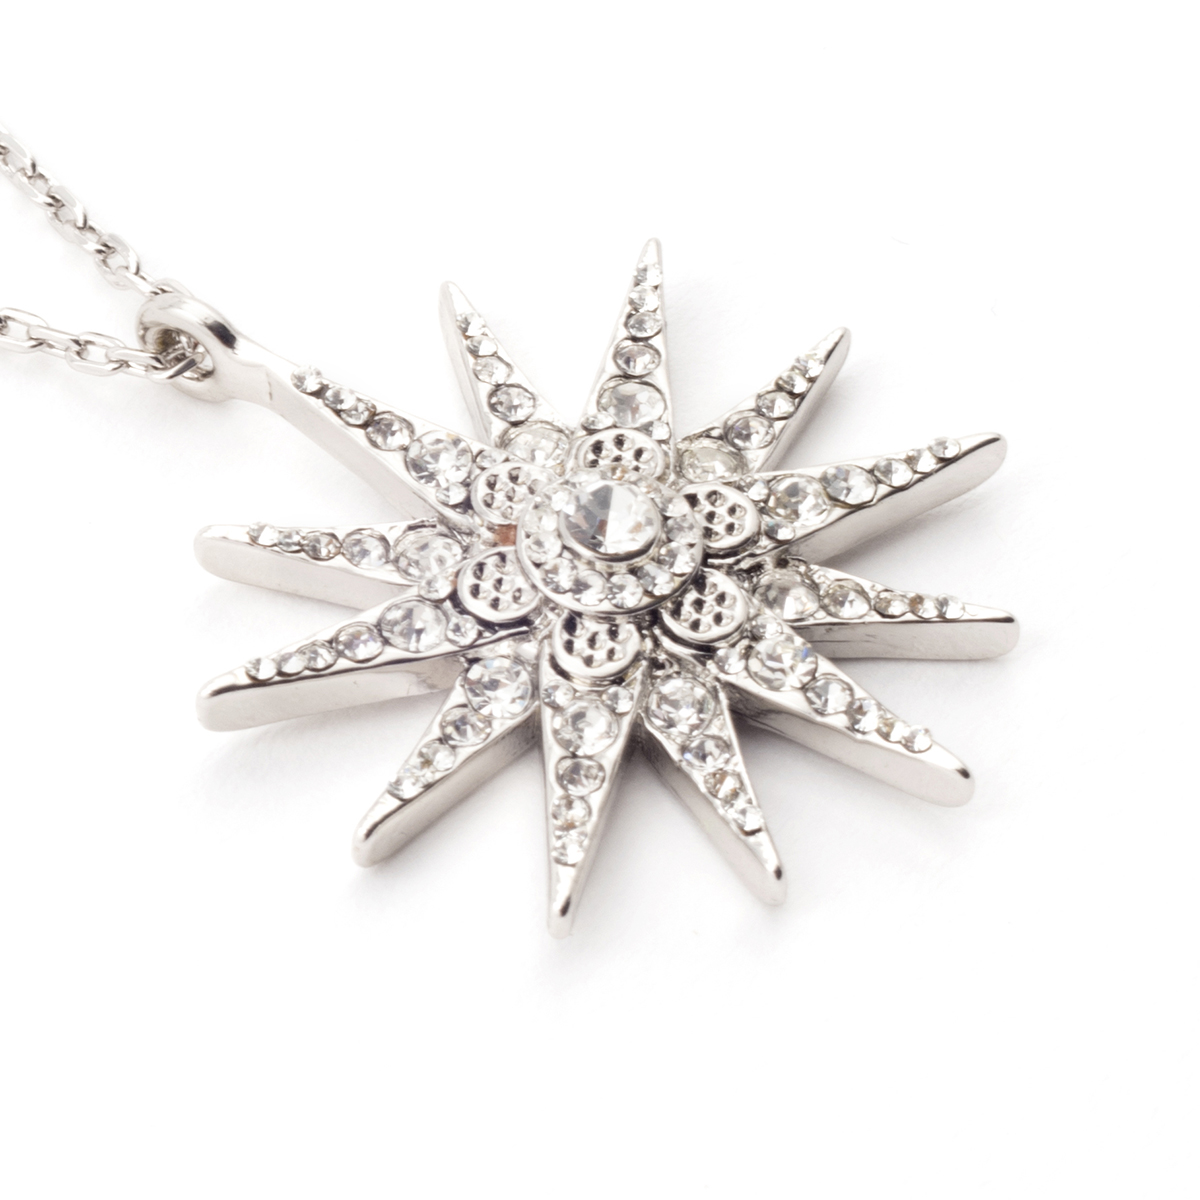 Star pendant necklace by Bill Skinner